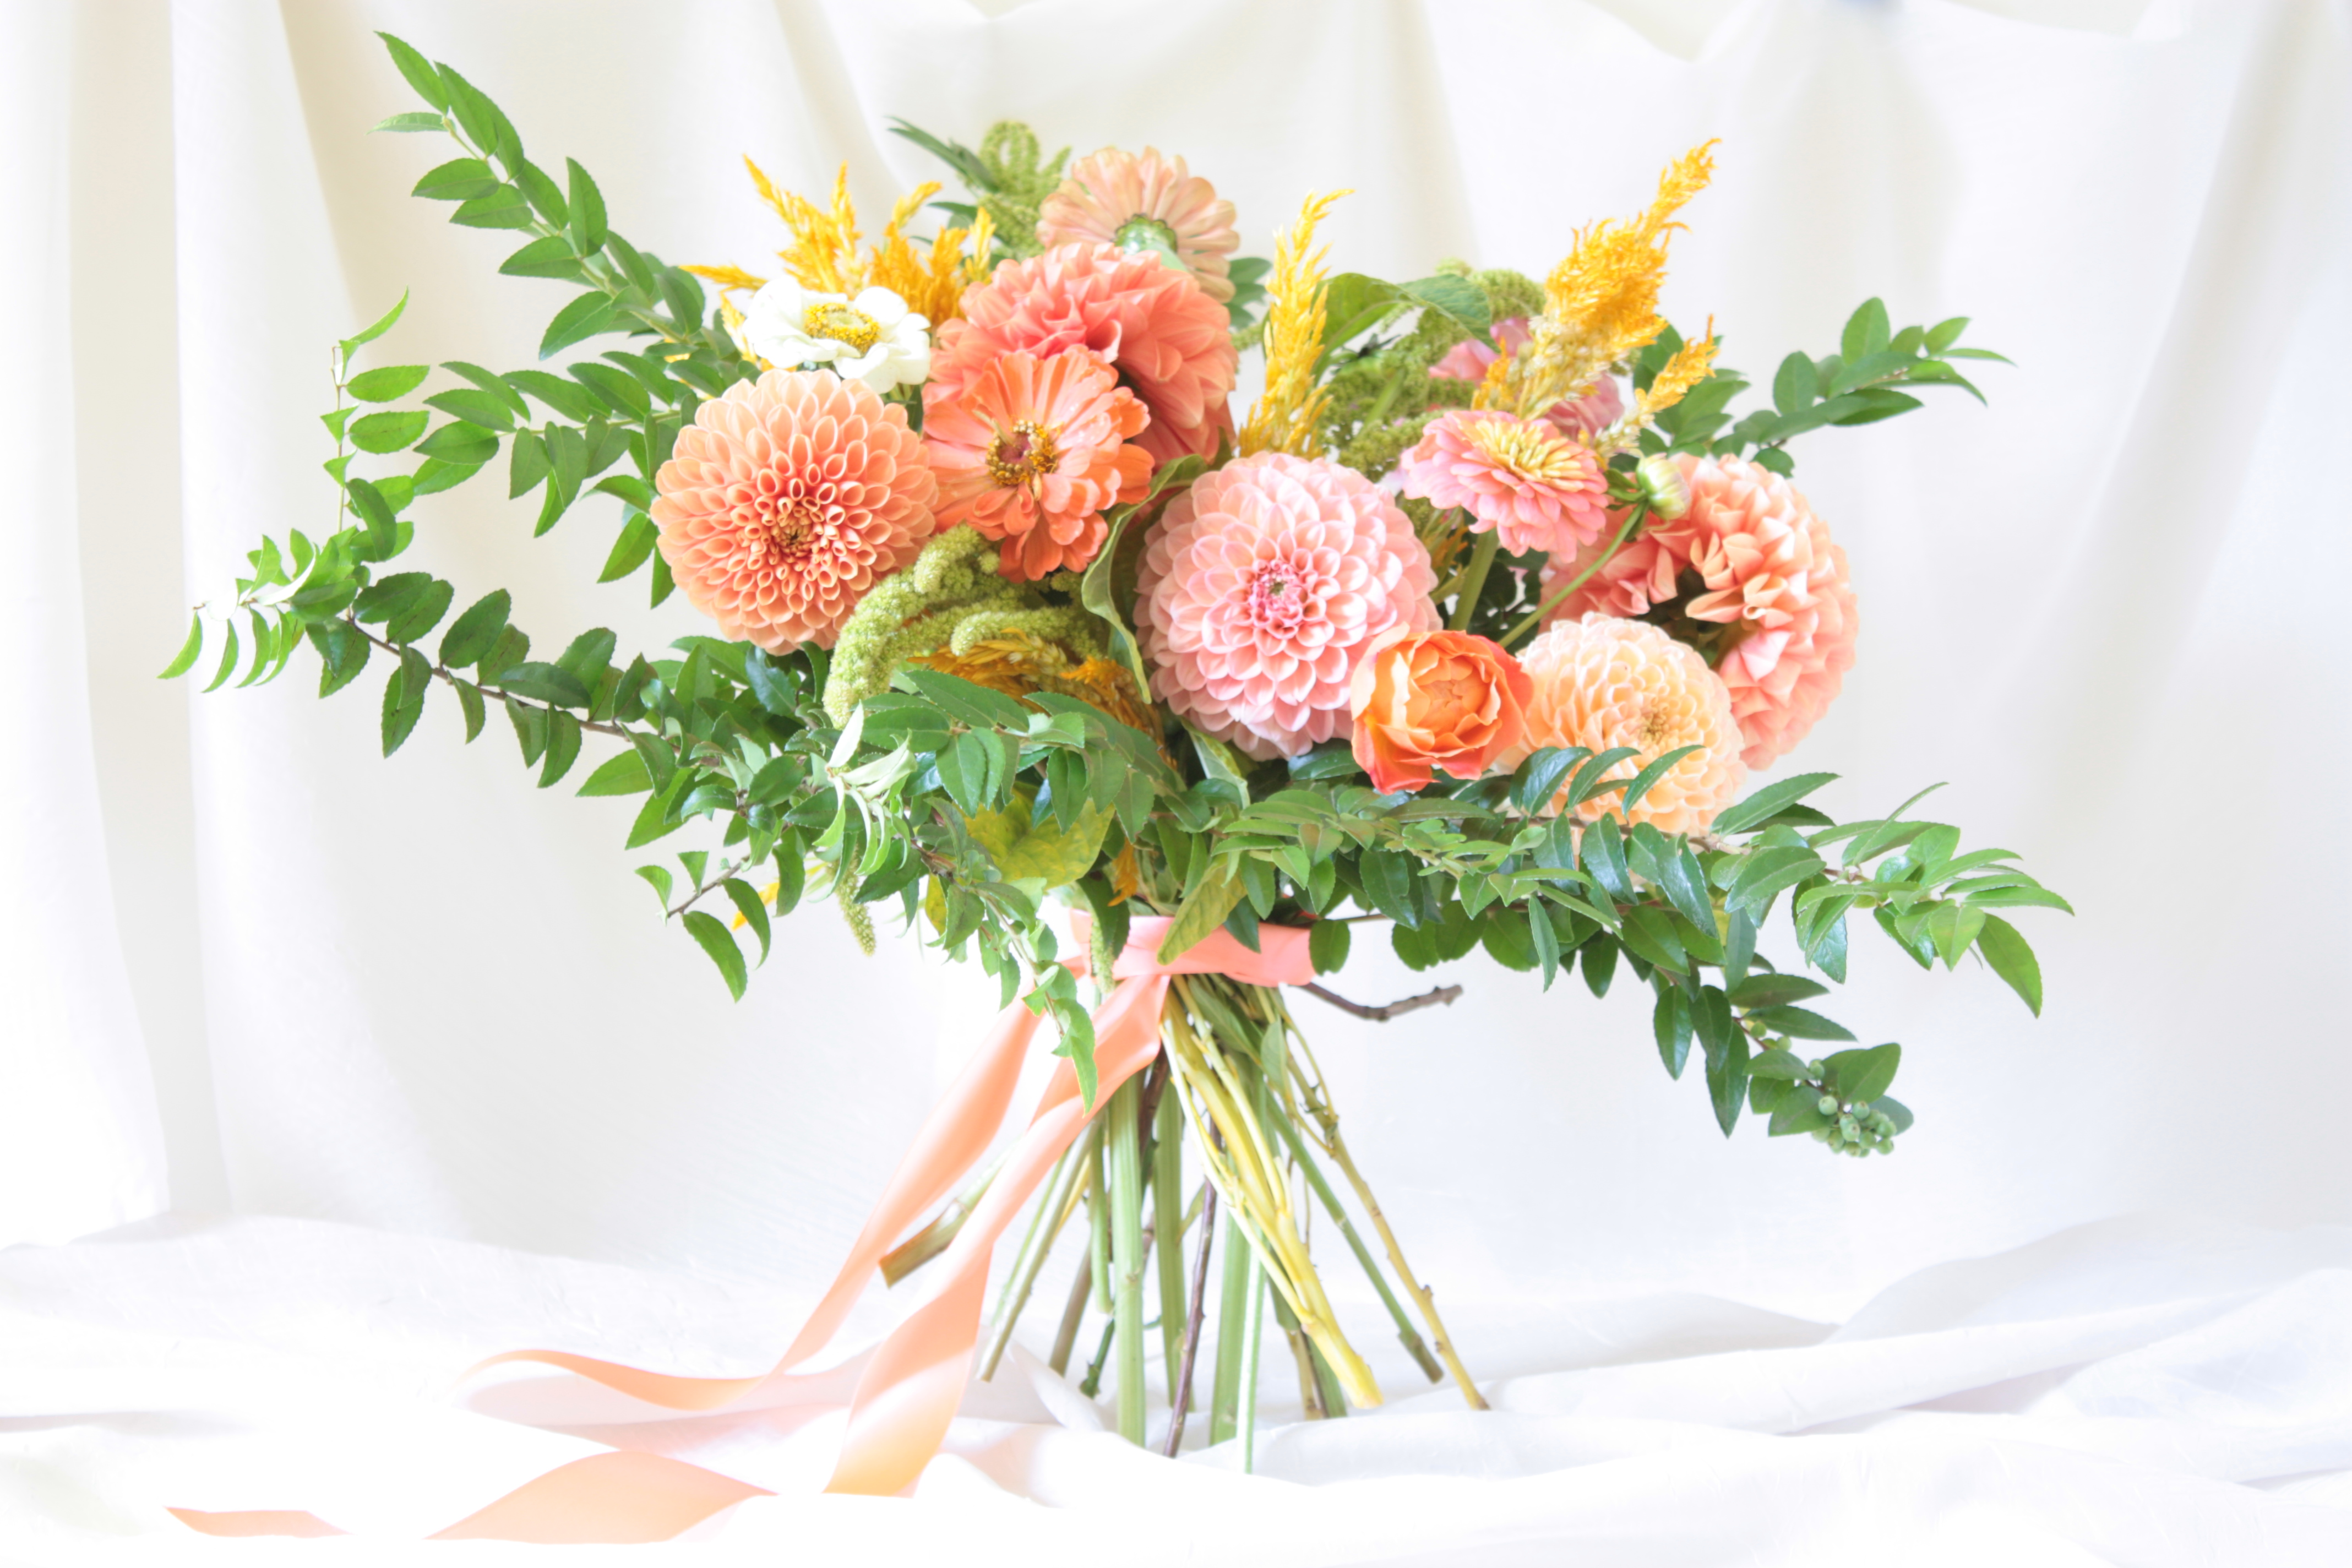 bridal bouquet wedding flowers seattle wedding flowers wedding florist seattle wedding florist seattle flowers flower farm seattle flower farm florist floral design floral designer seattle floral design seattle floral designer